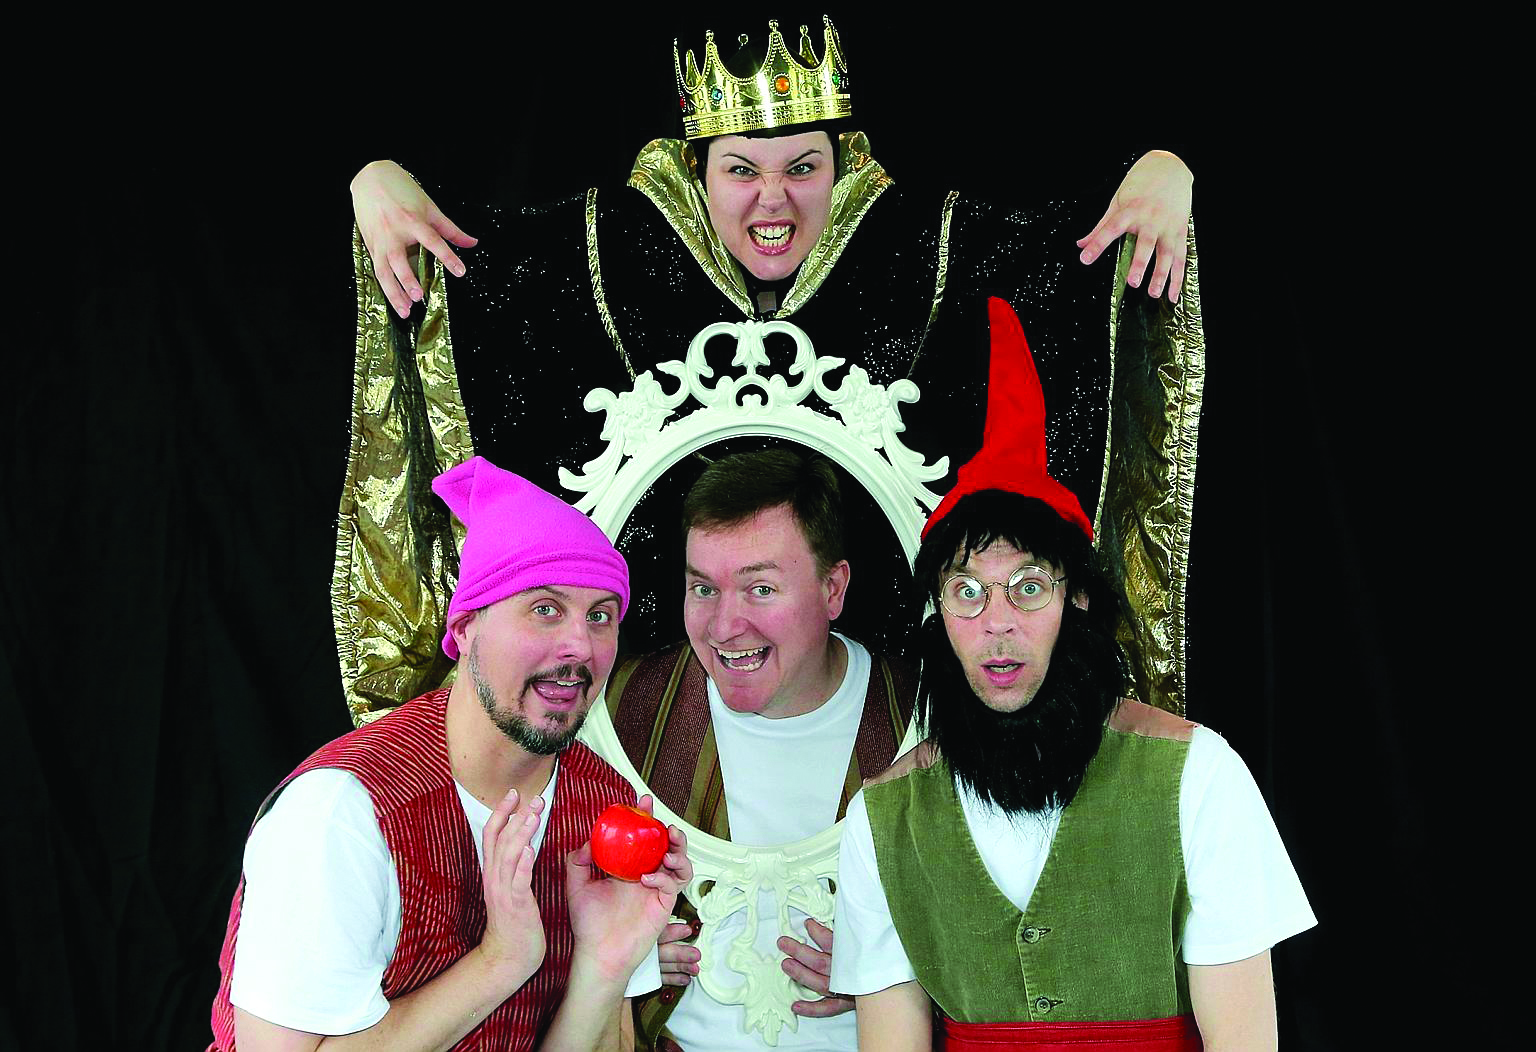 nakids  -Caption for Below:Snow White by Candian group DuffleBag Theatre, one of the shows lined up for ACT 3i's Theatre for Children.##########d##########COURTESY OF ACT 3 INTERNATION